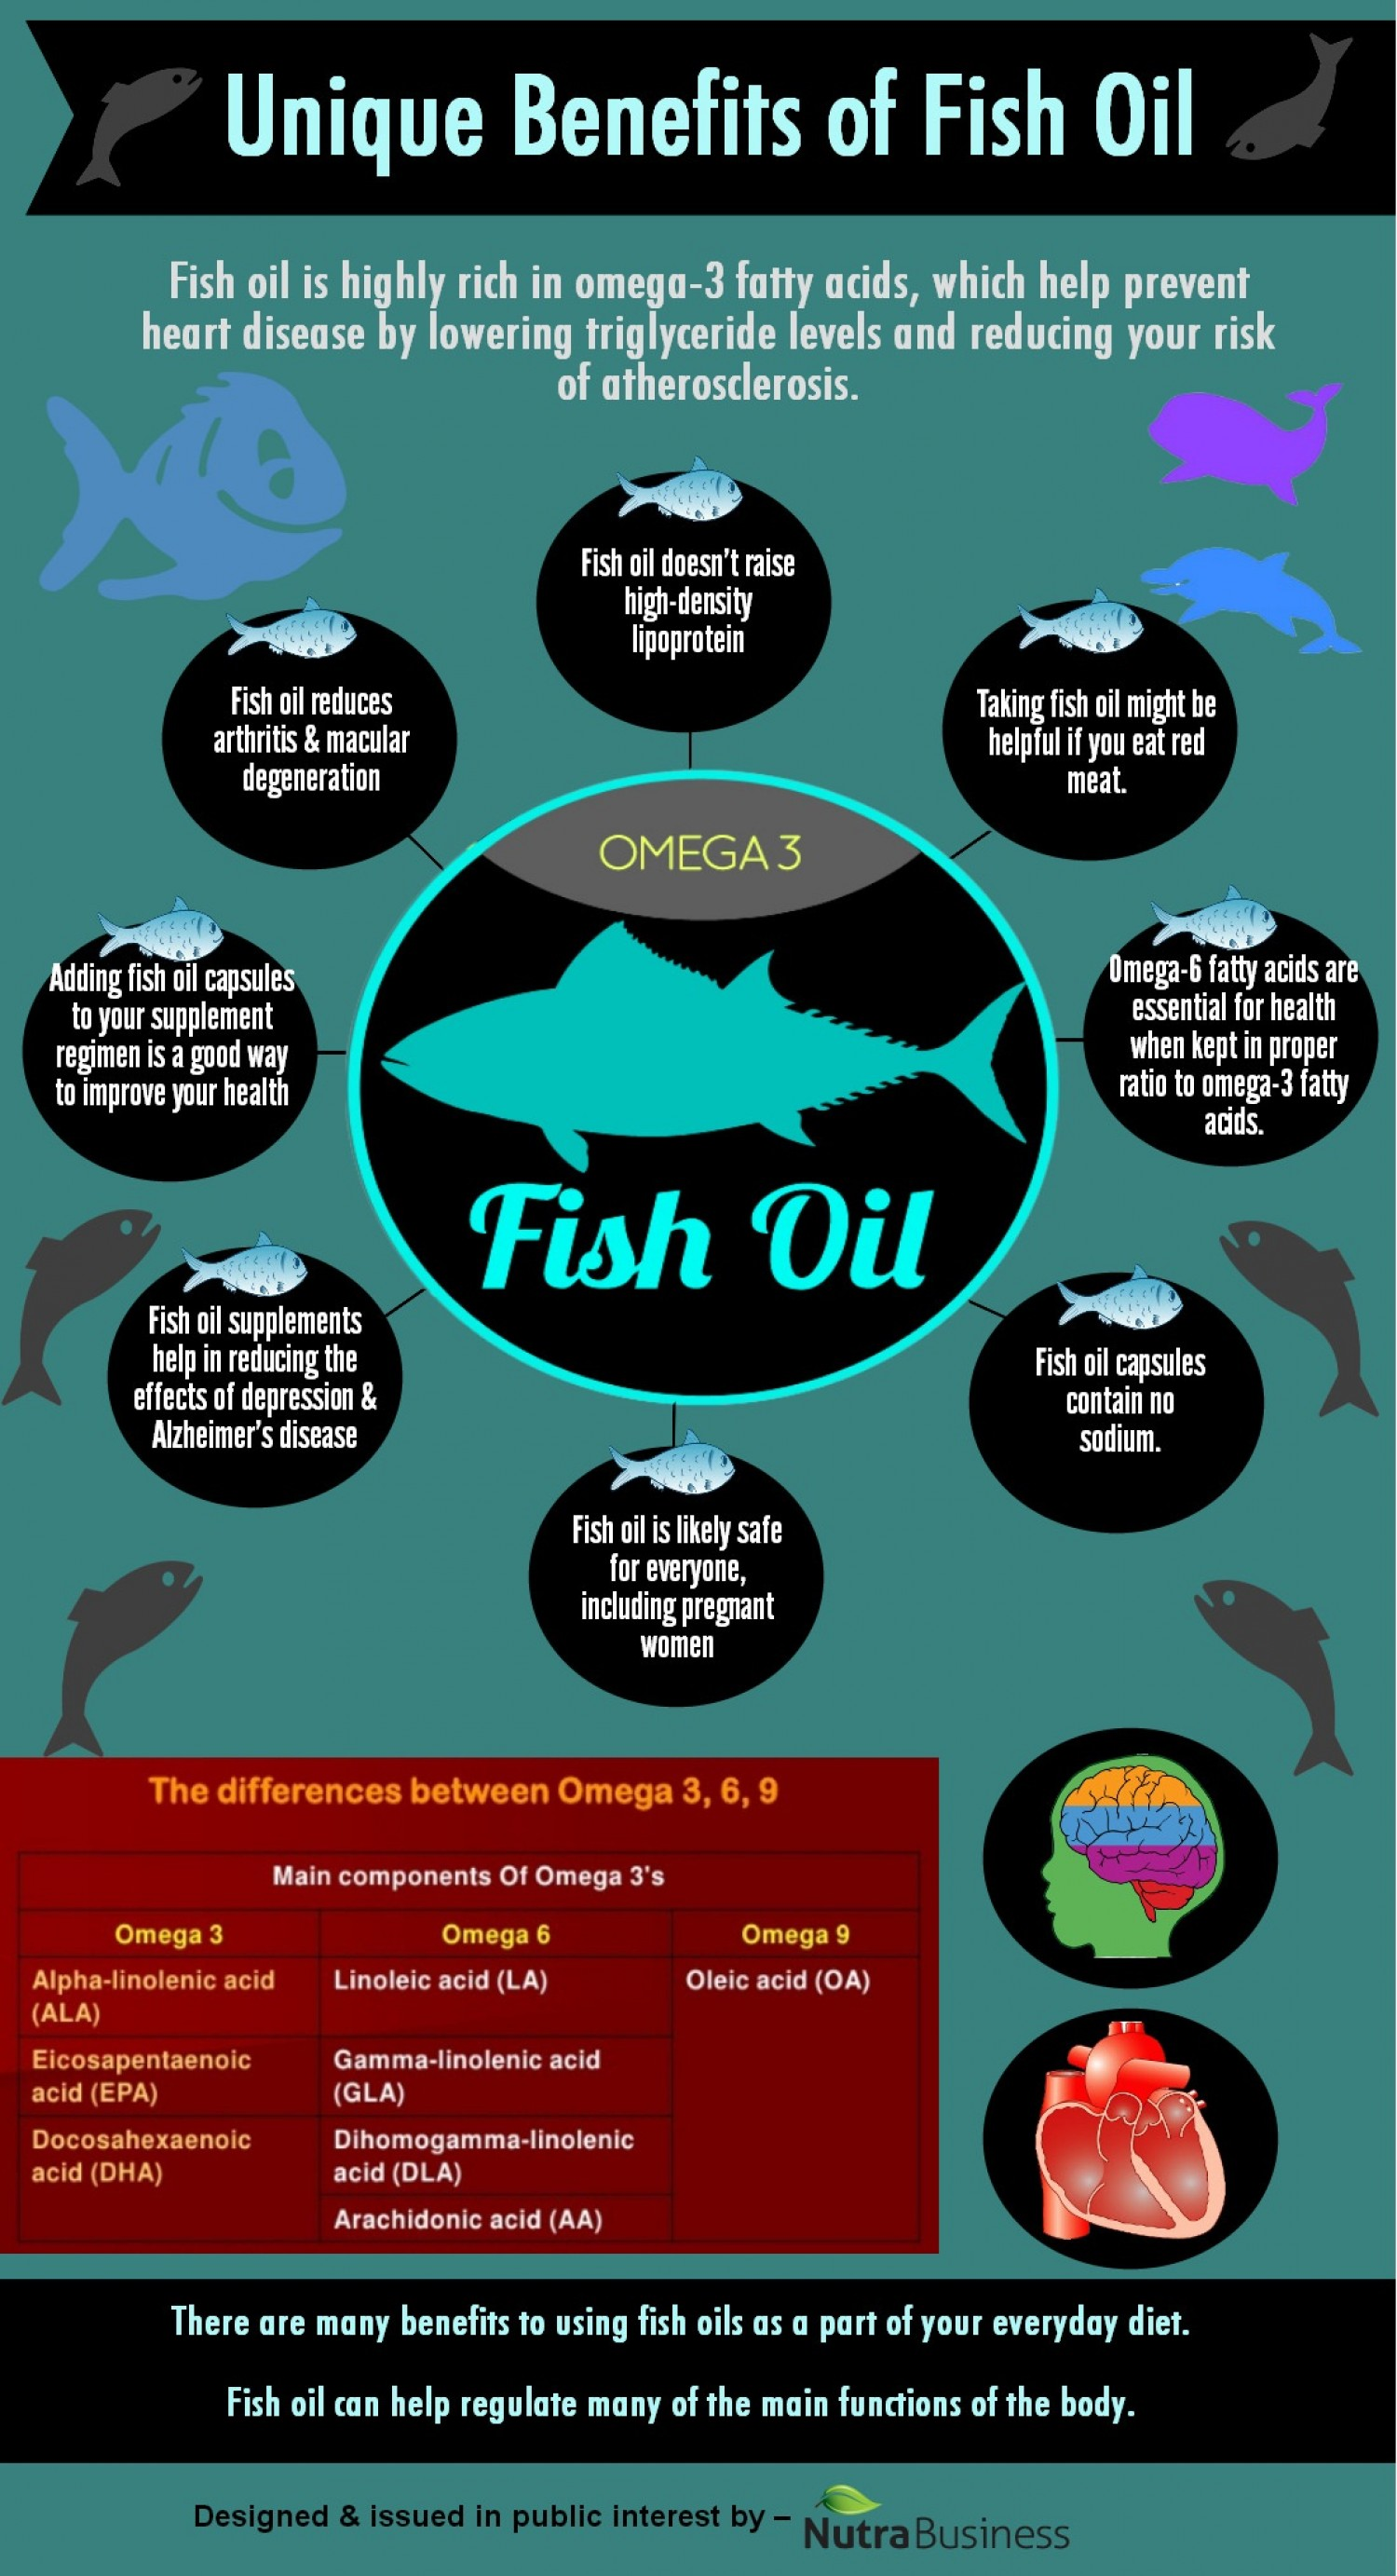 8 unique benefits of fish oil infographic for Advantages of fish oil